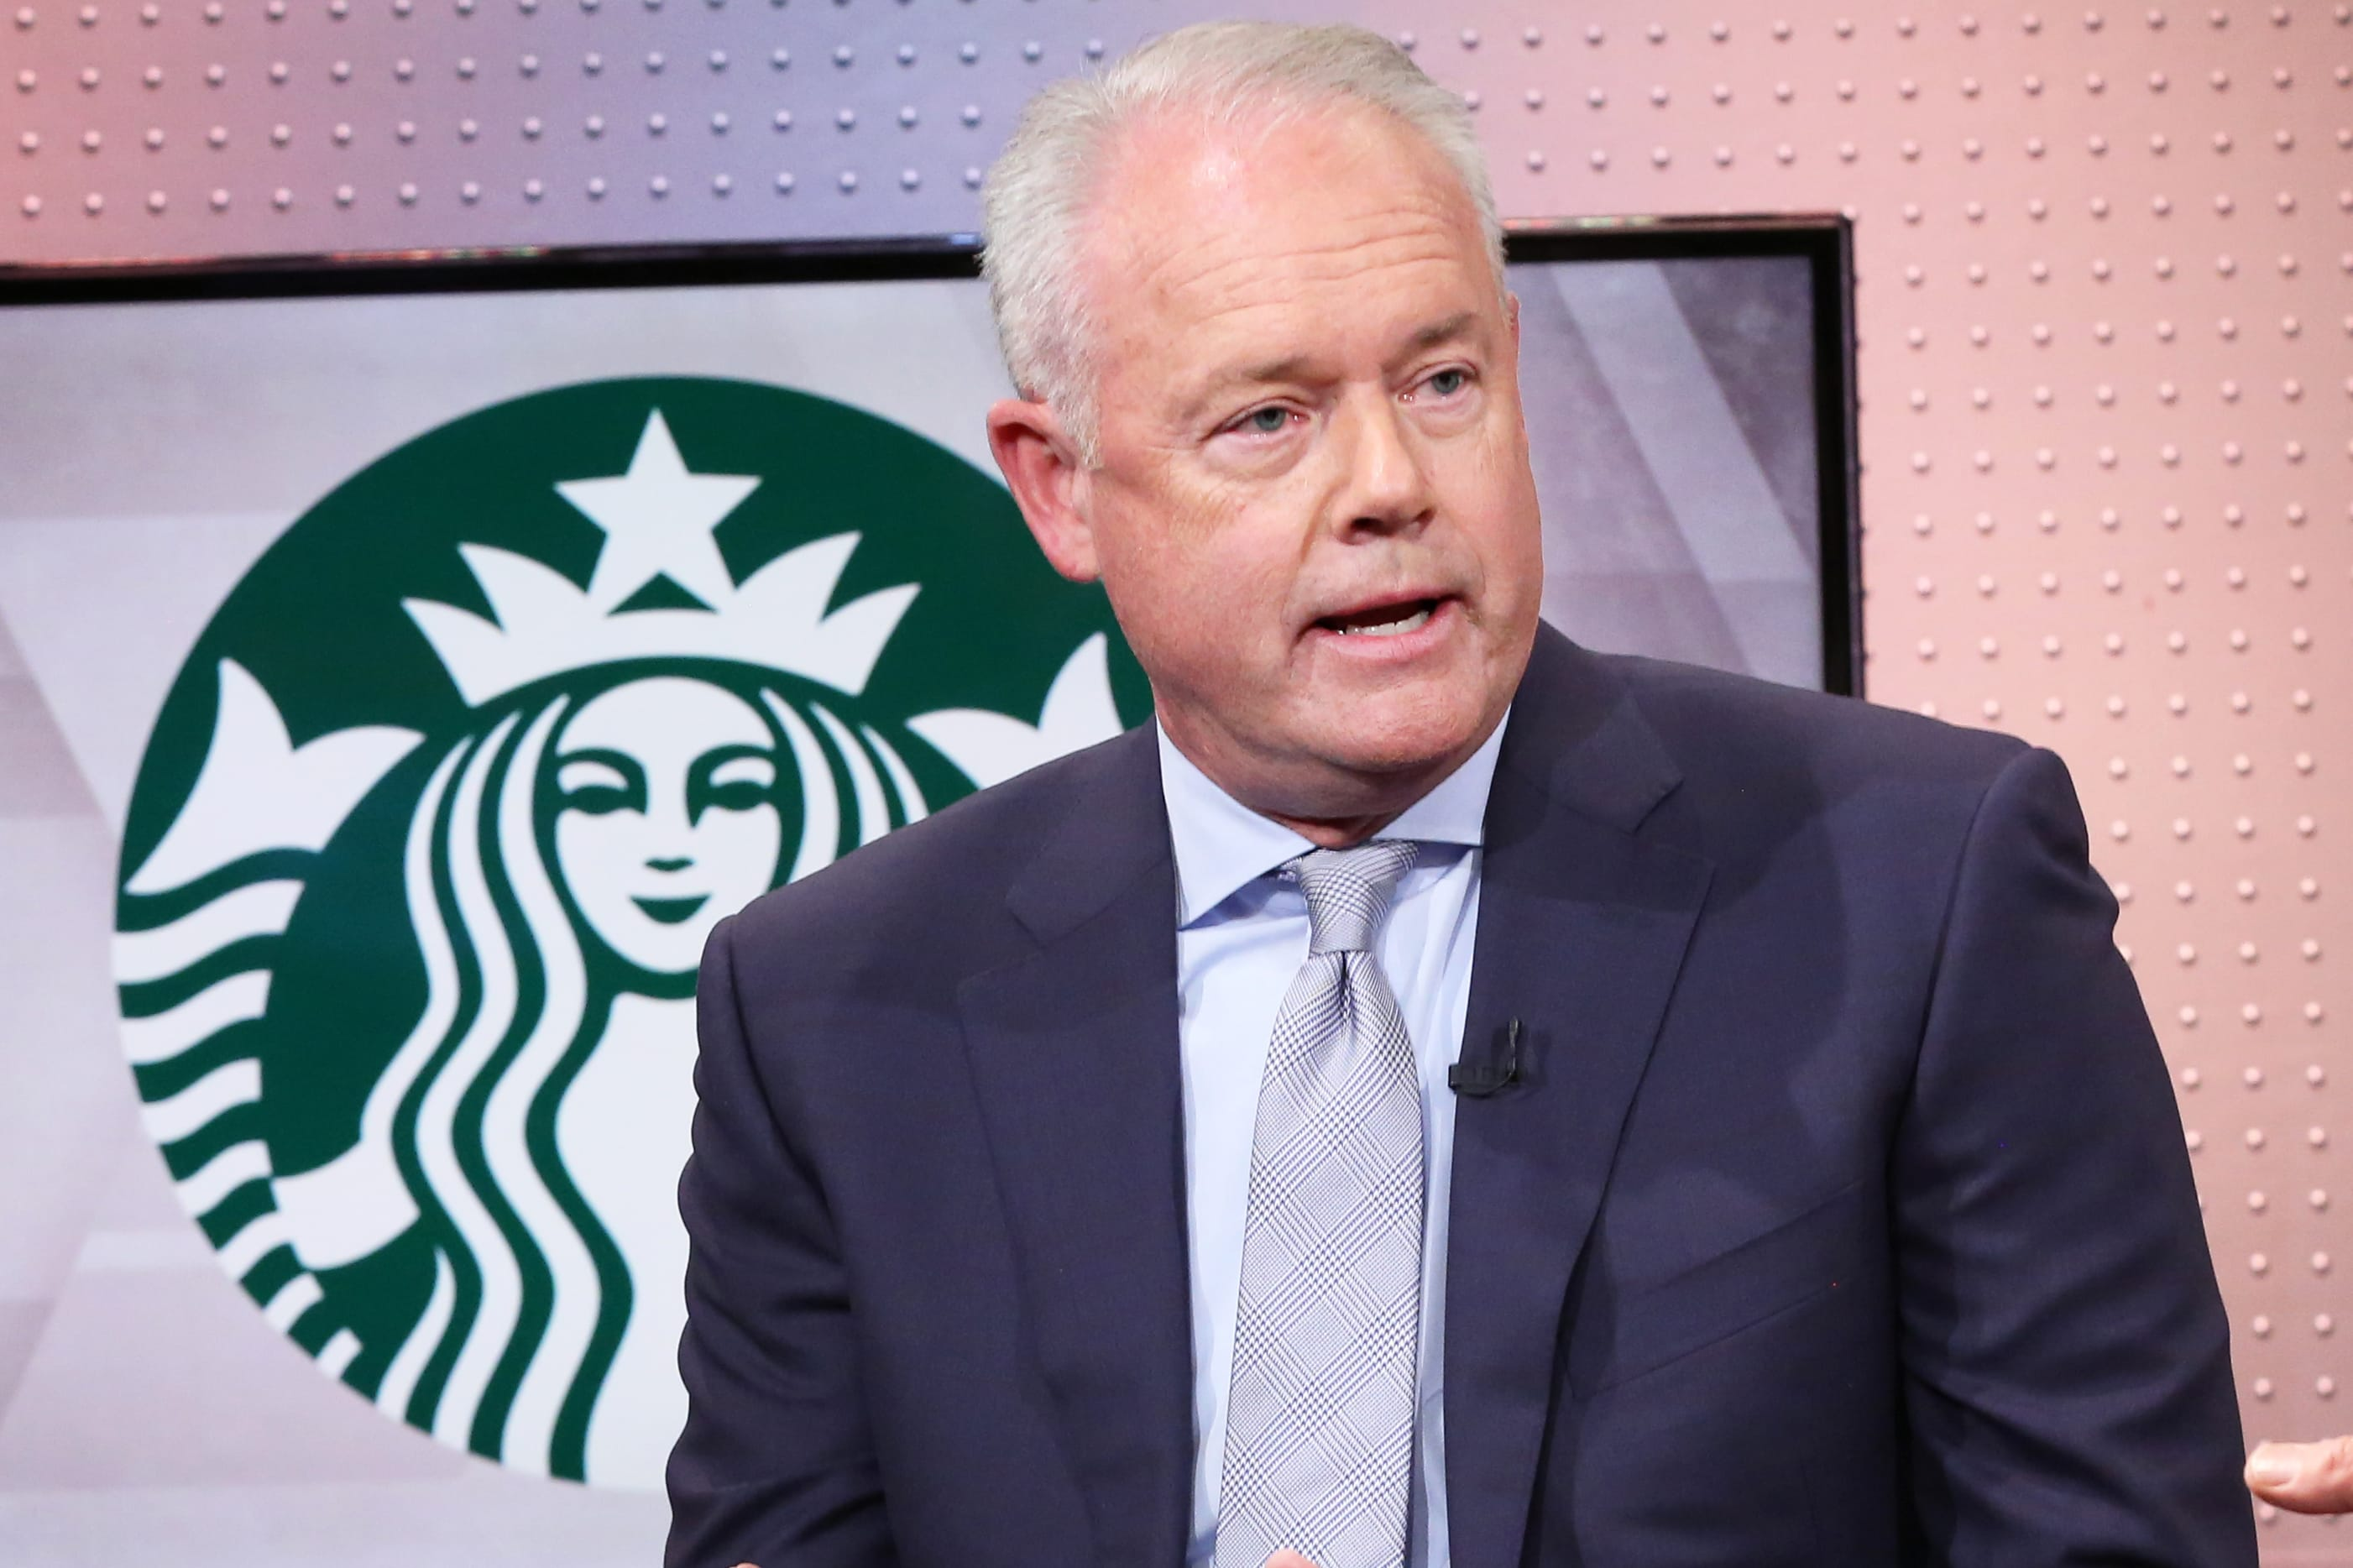 Starbucks to boost workers' mental health benefits, reduce 'remedial tasks'